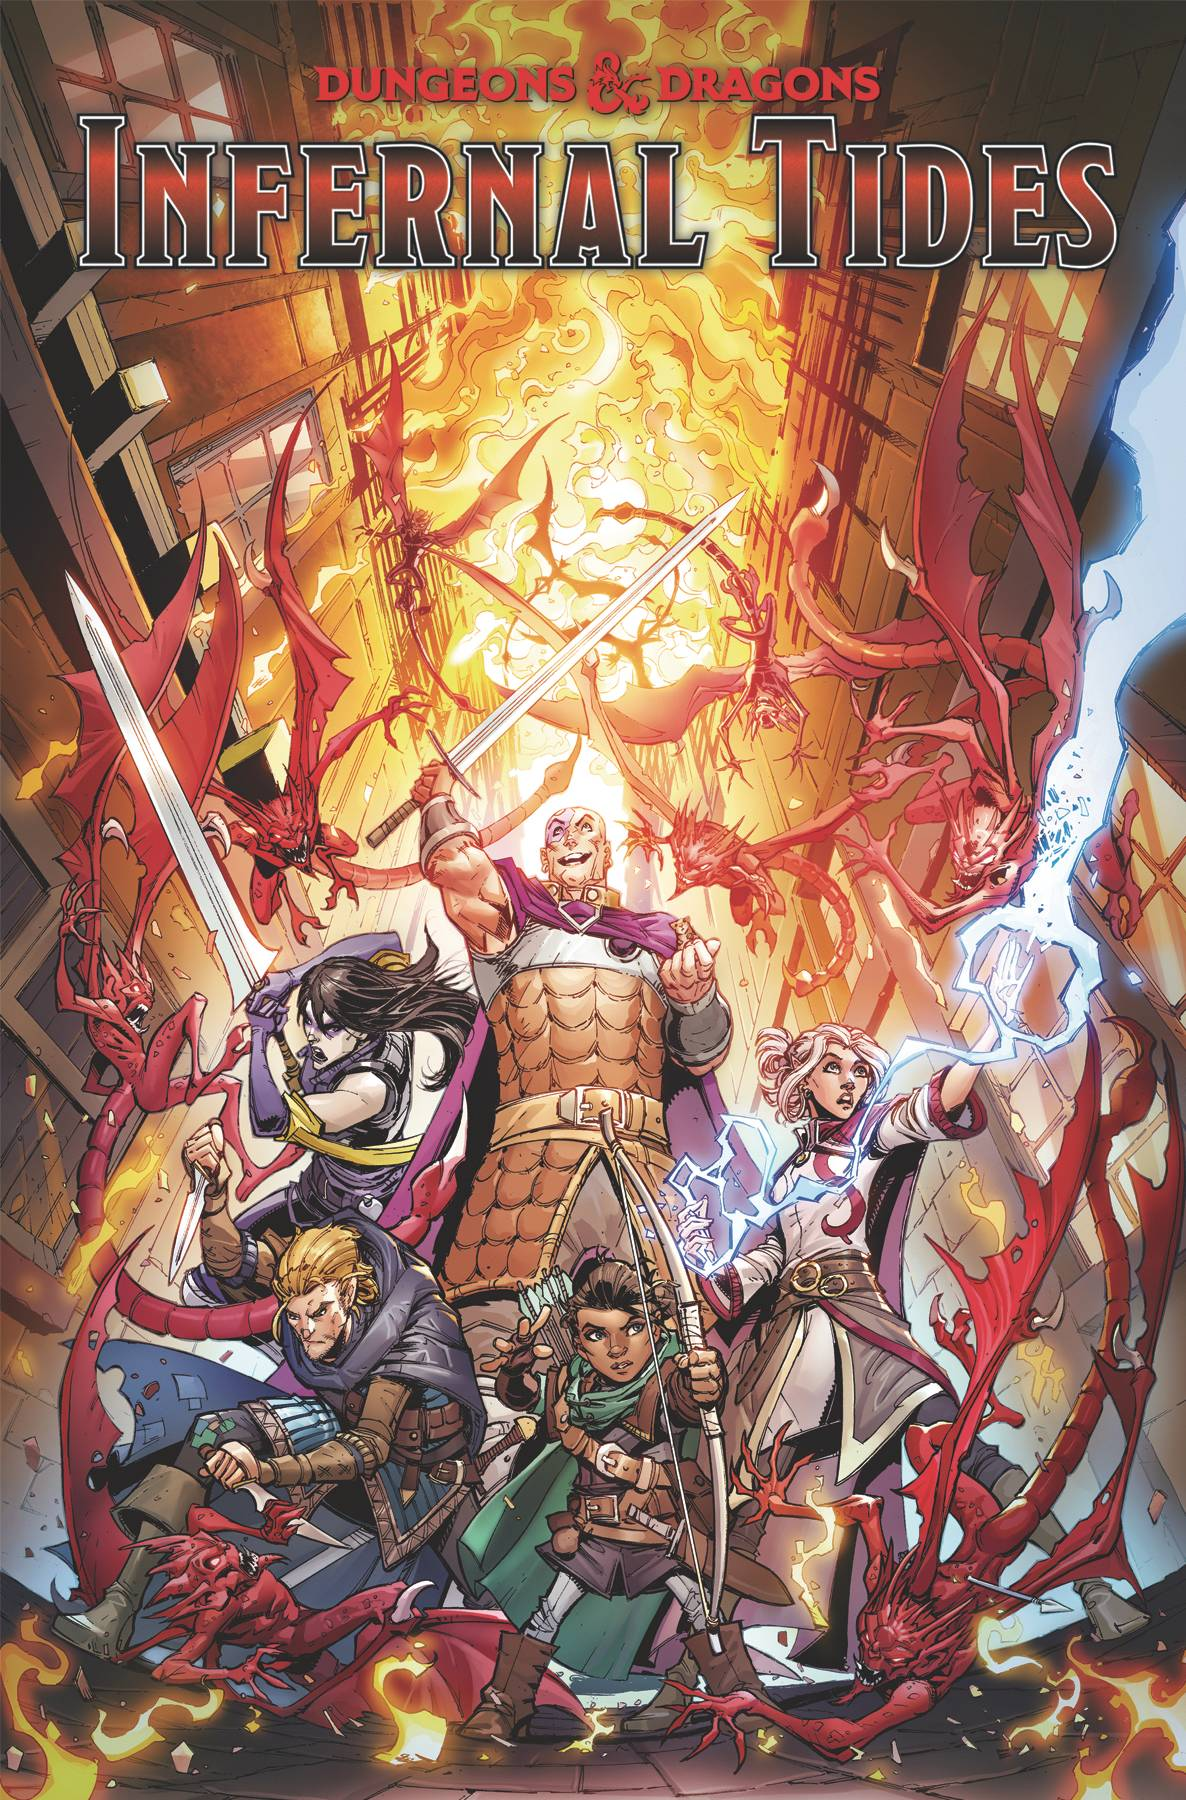 DUNGEONS & DRAGONS INFERNAL TIDES TP